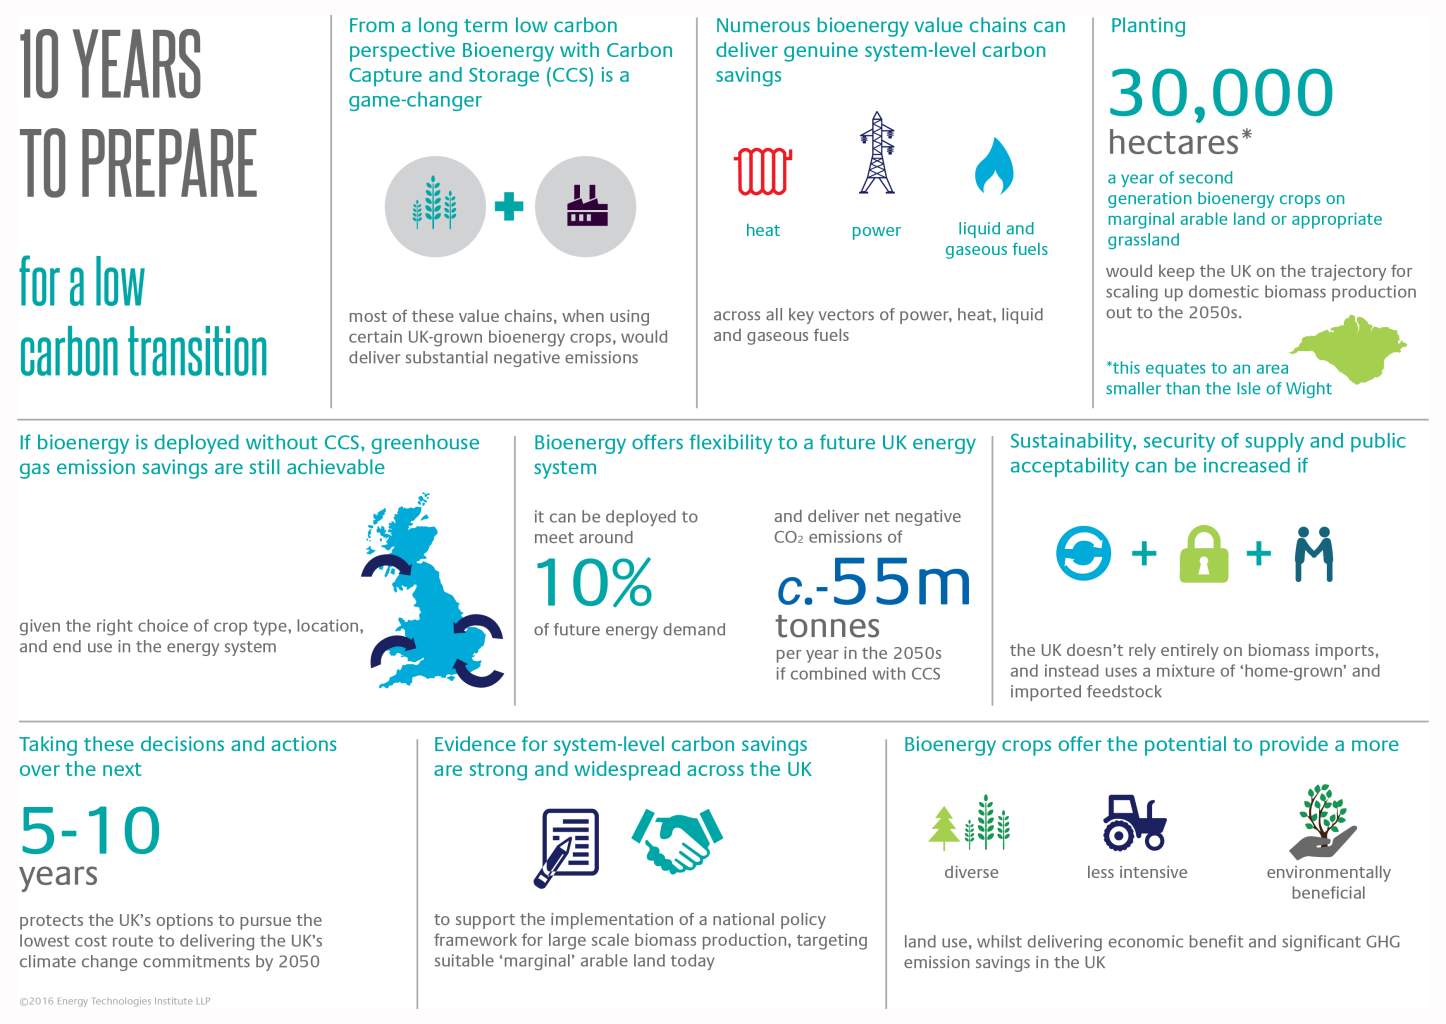 http://www.eti.co.uk/wp-content/uploads/2016/01/Delivering-greenhouse-gas-emission-savings-Infographic-FOR-WEB-WHITE-BACKGROUND-.png